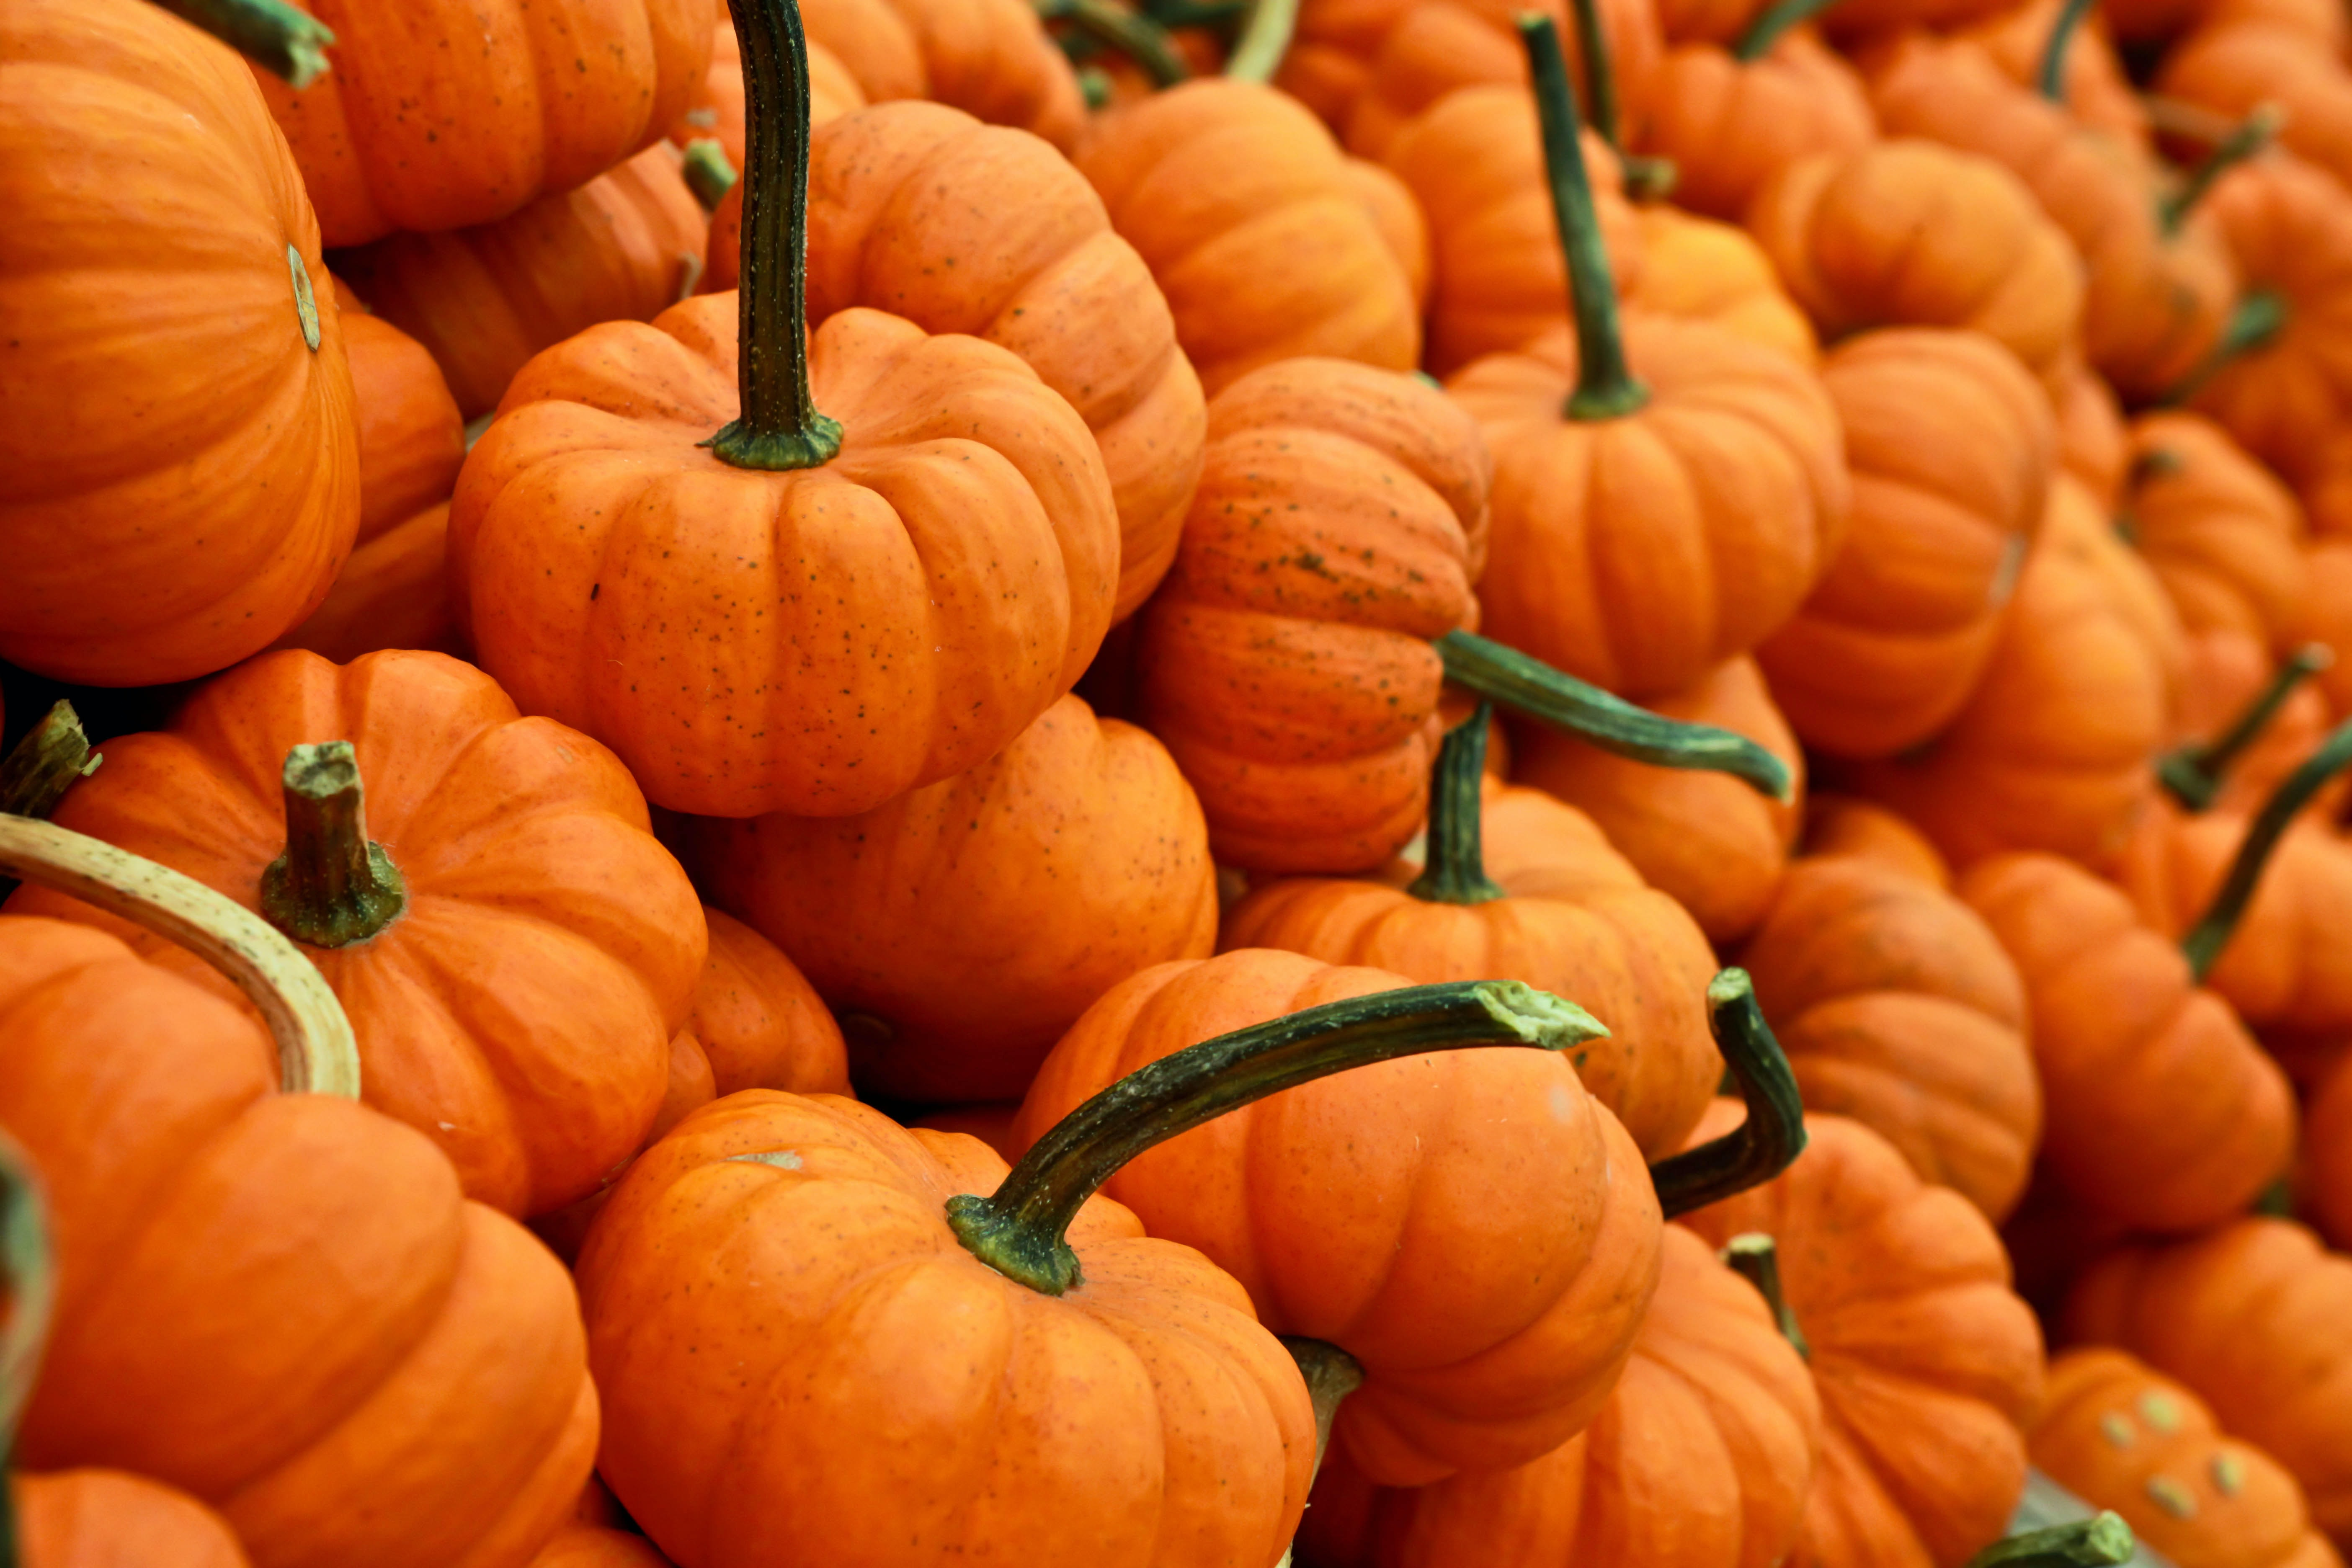 Stack of small orange pumpkins and gourds at an autumn market